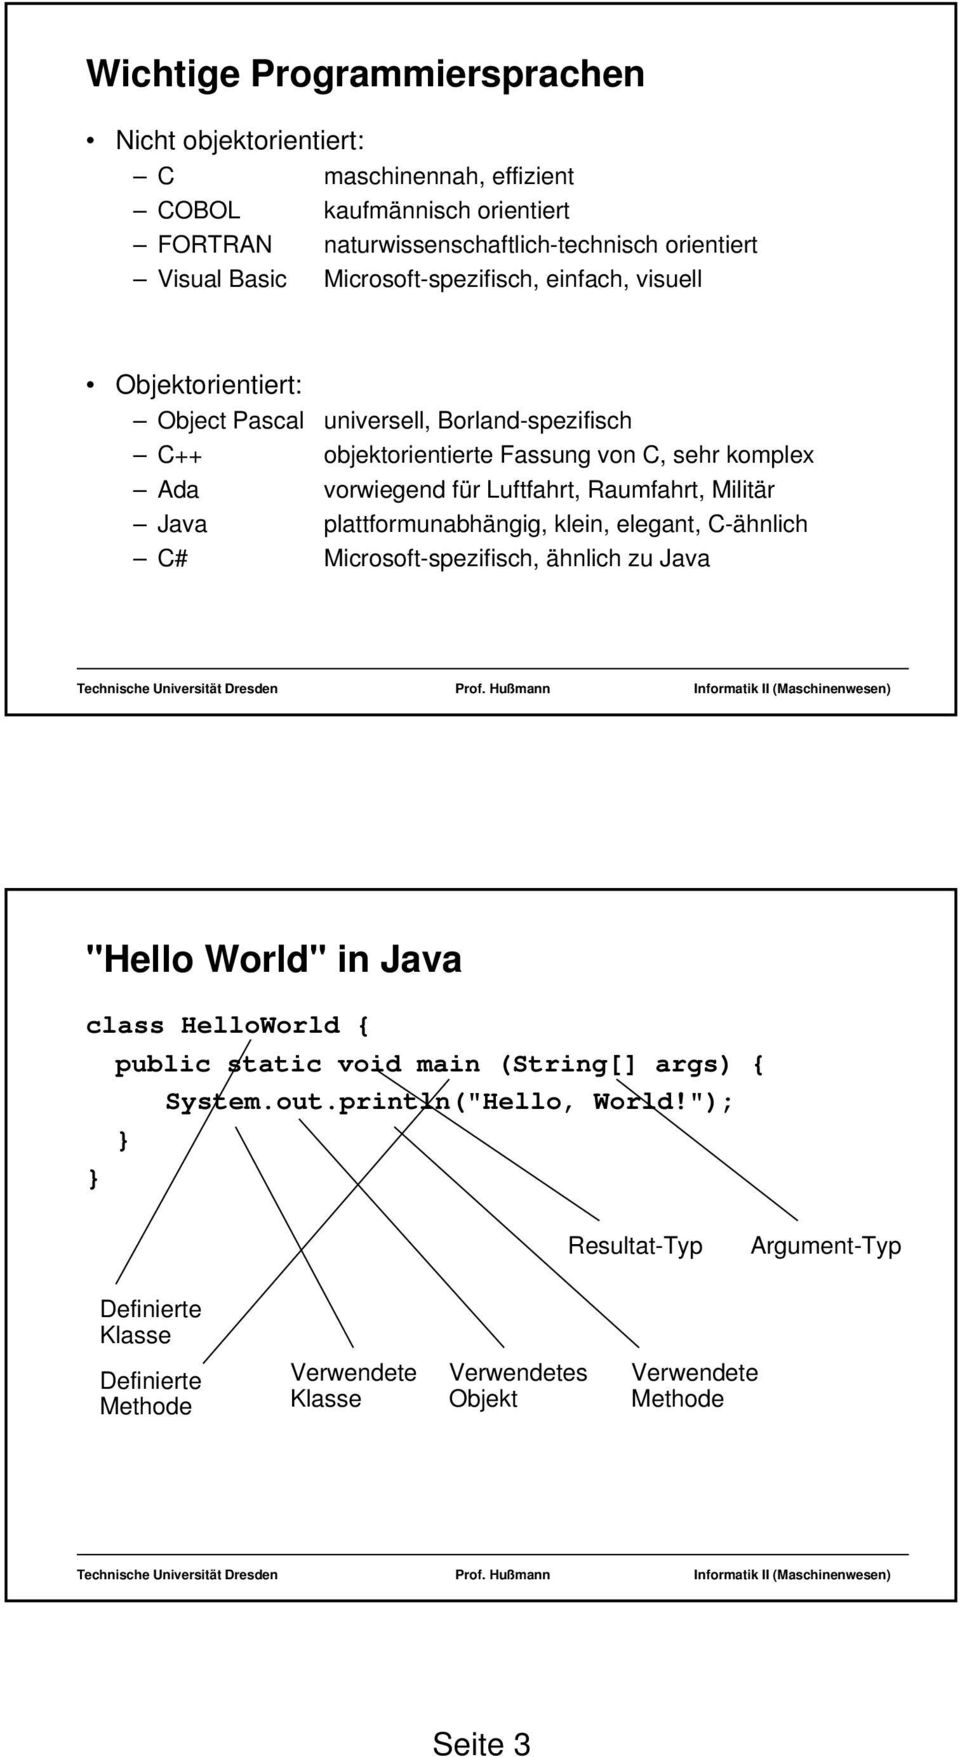 "Luftfahrt, Raumfahrt, Militär Java plattformunabhängig, klein, elegant, C-ähnlich C# Microsoft-spezifisch, ähnlich zu Java ""Hello World"" in Java class HelloWorld { public static"